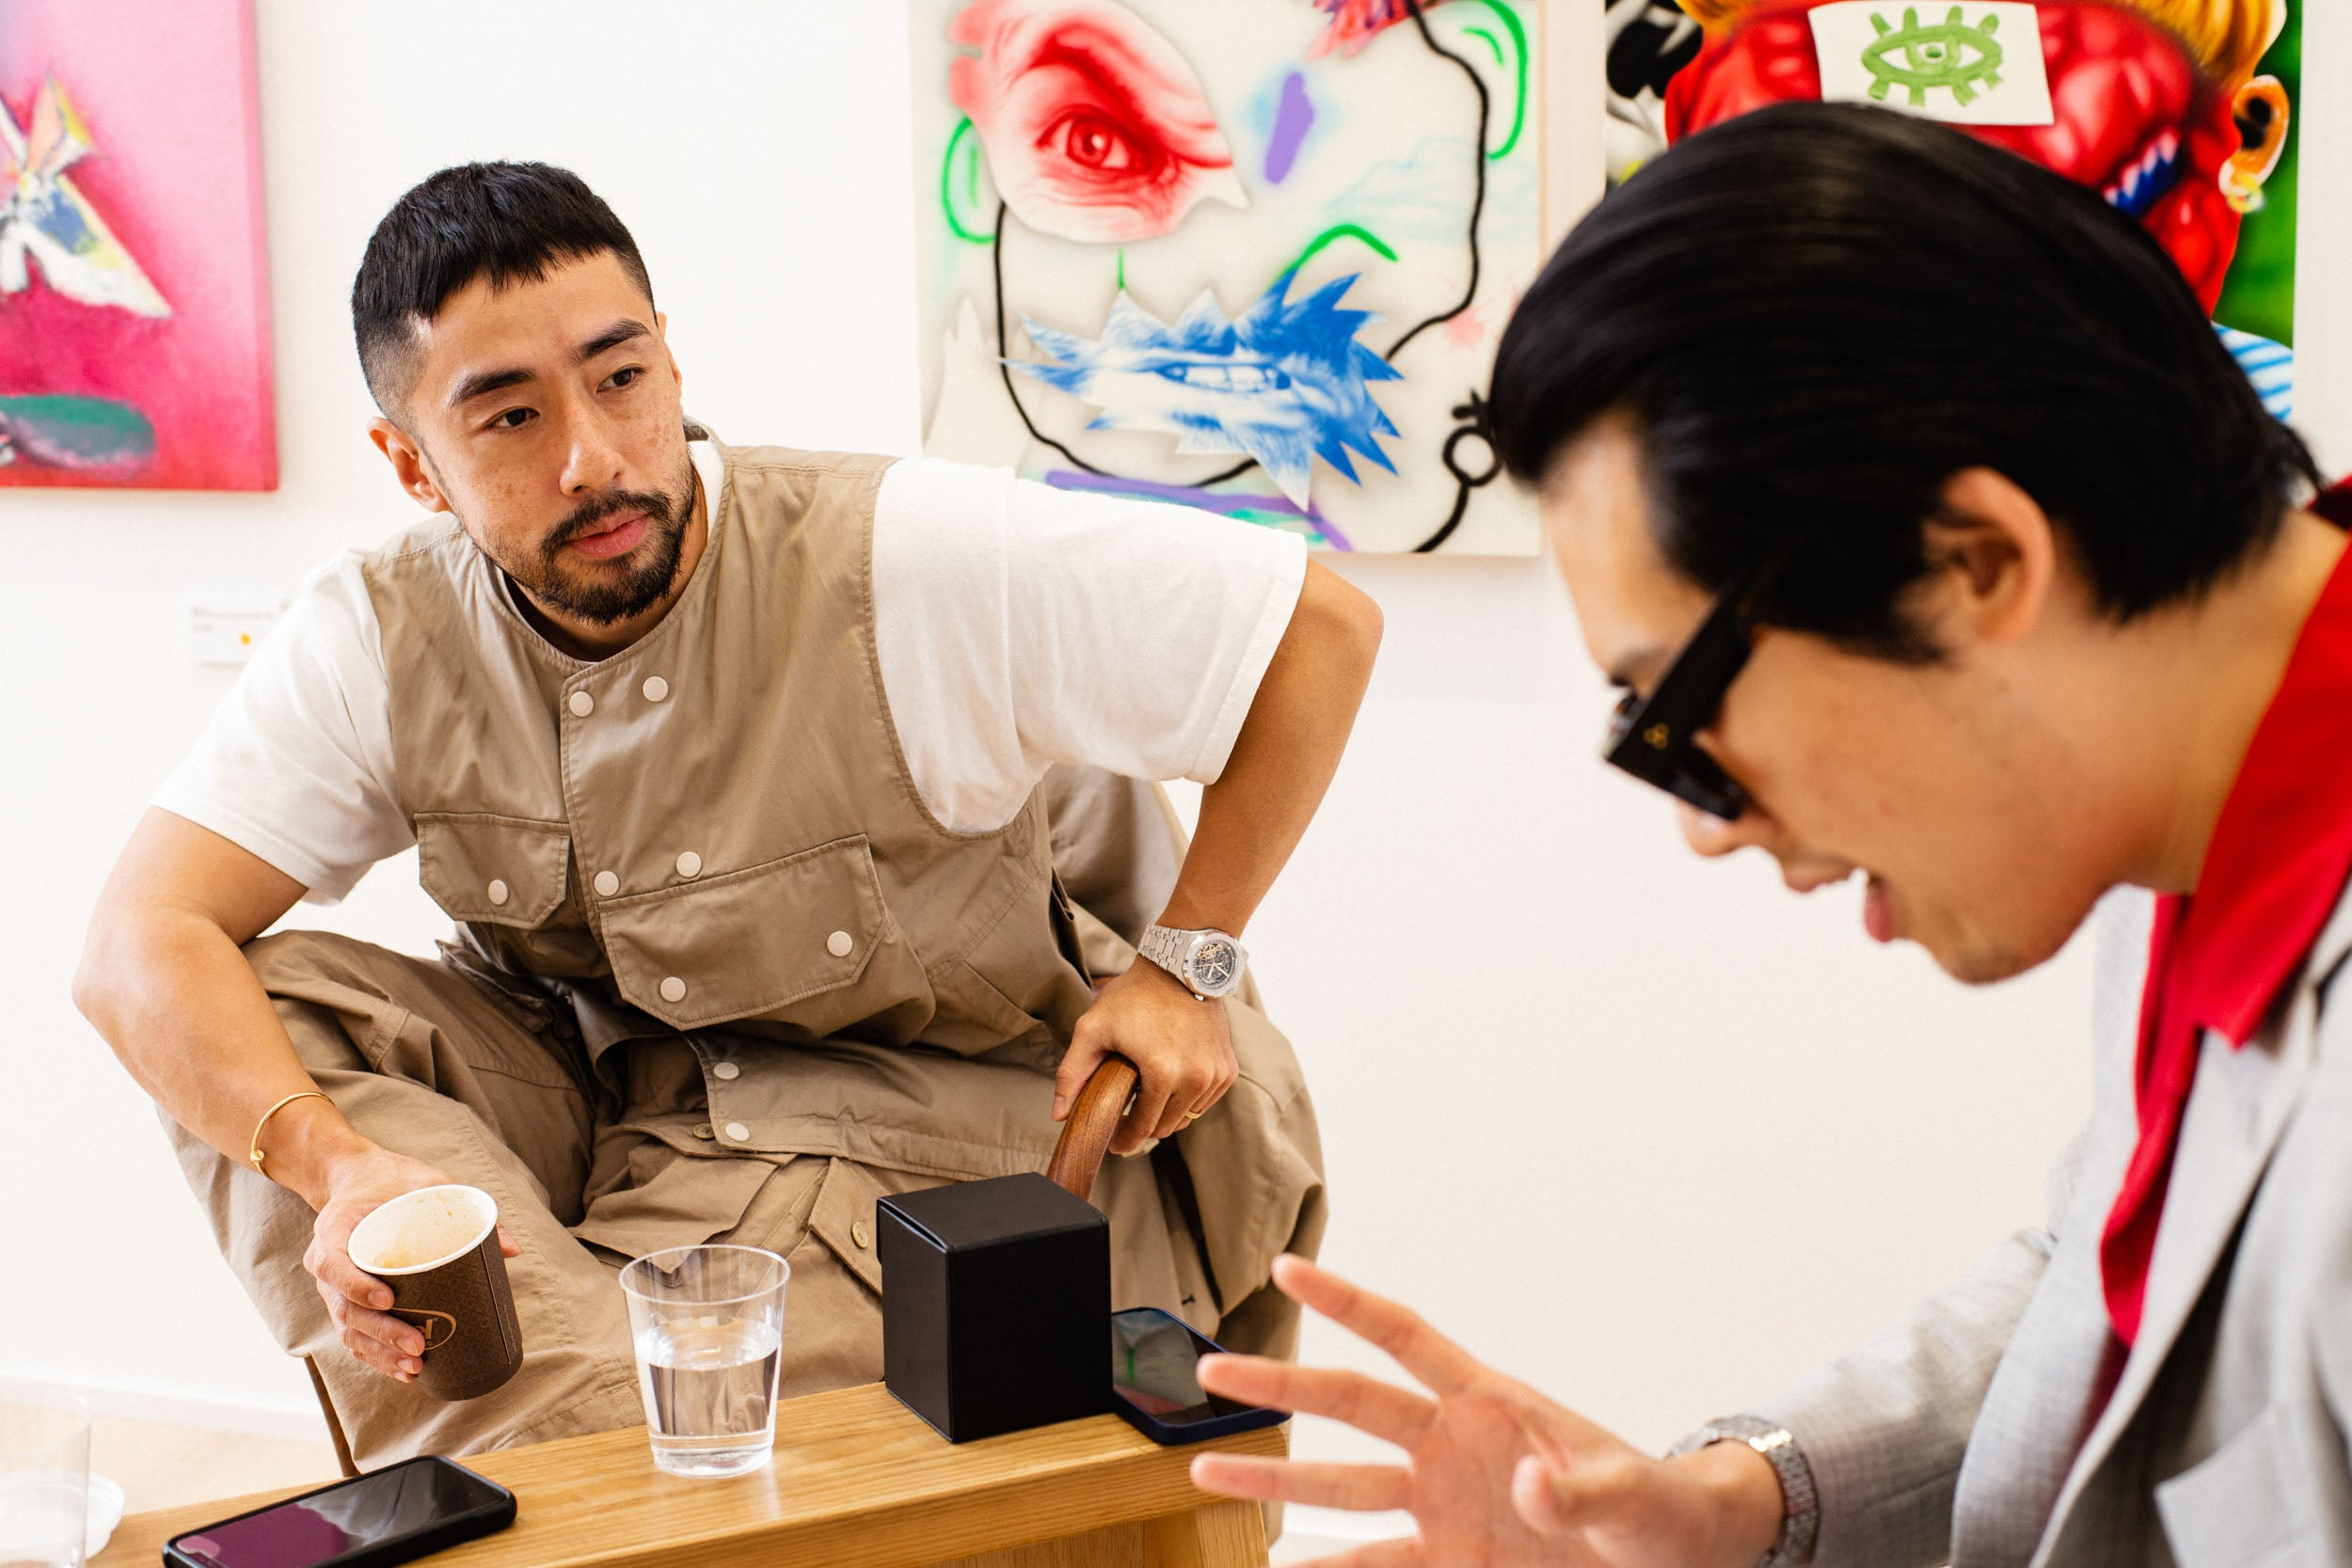 Poon and Randy talking at table in Obsessions: Contemporary Culture with Kevin Poon for A Collected Man London